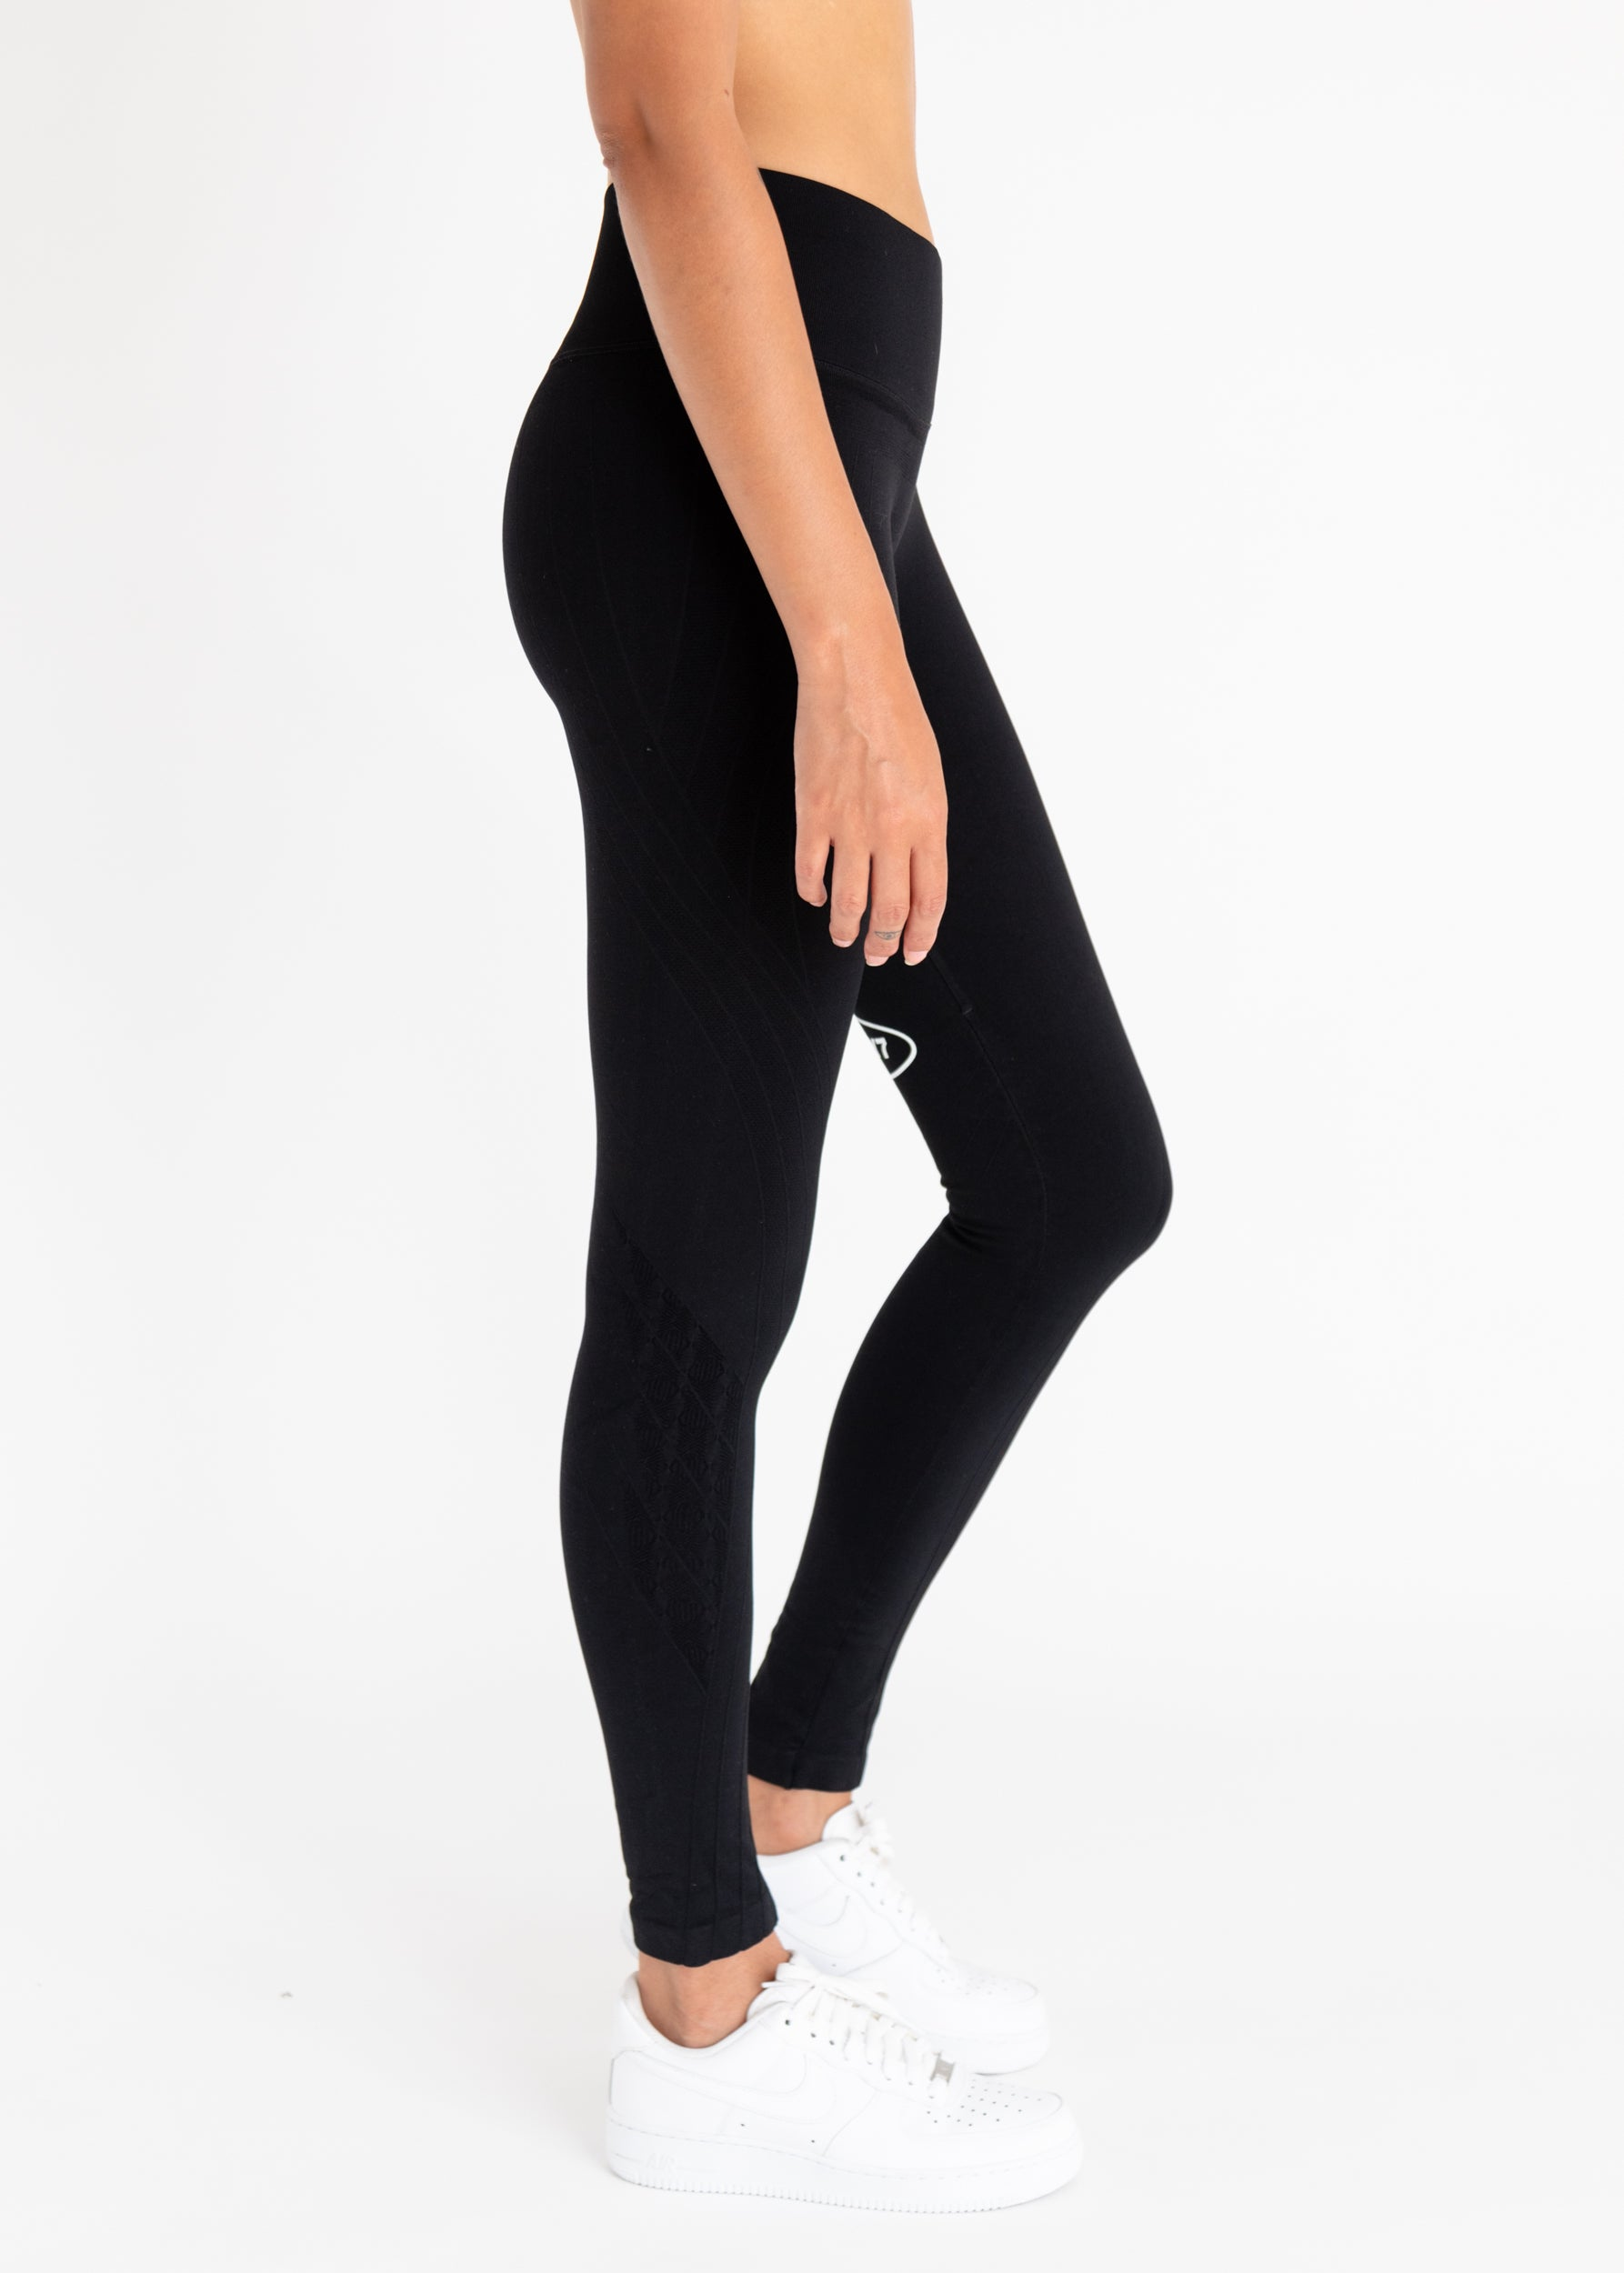 1234567 Seamless Legging